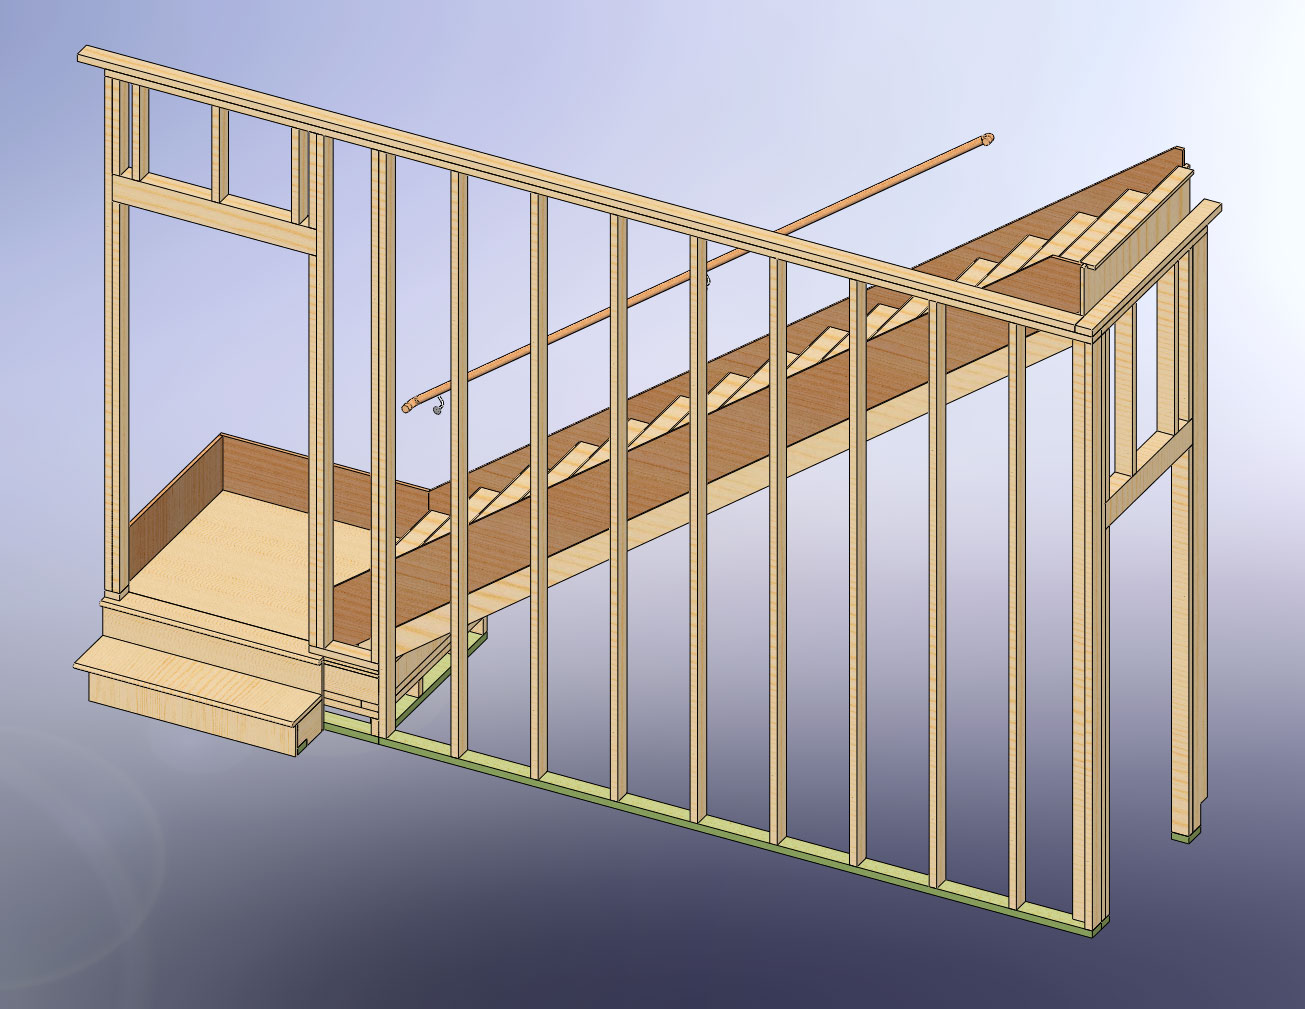 48x28 garage with attic and six dormers - Attic houses with exterior stairs ...